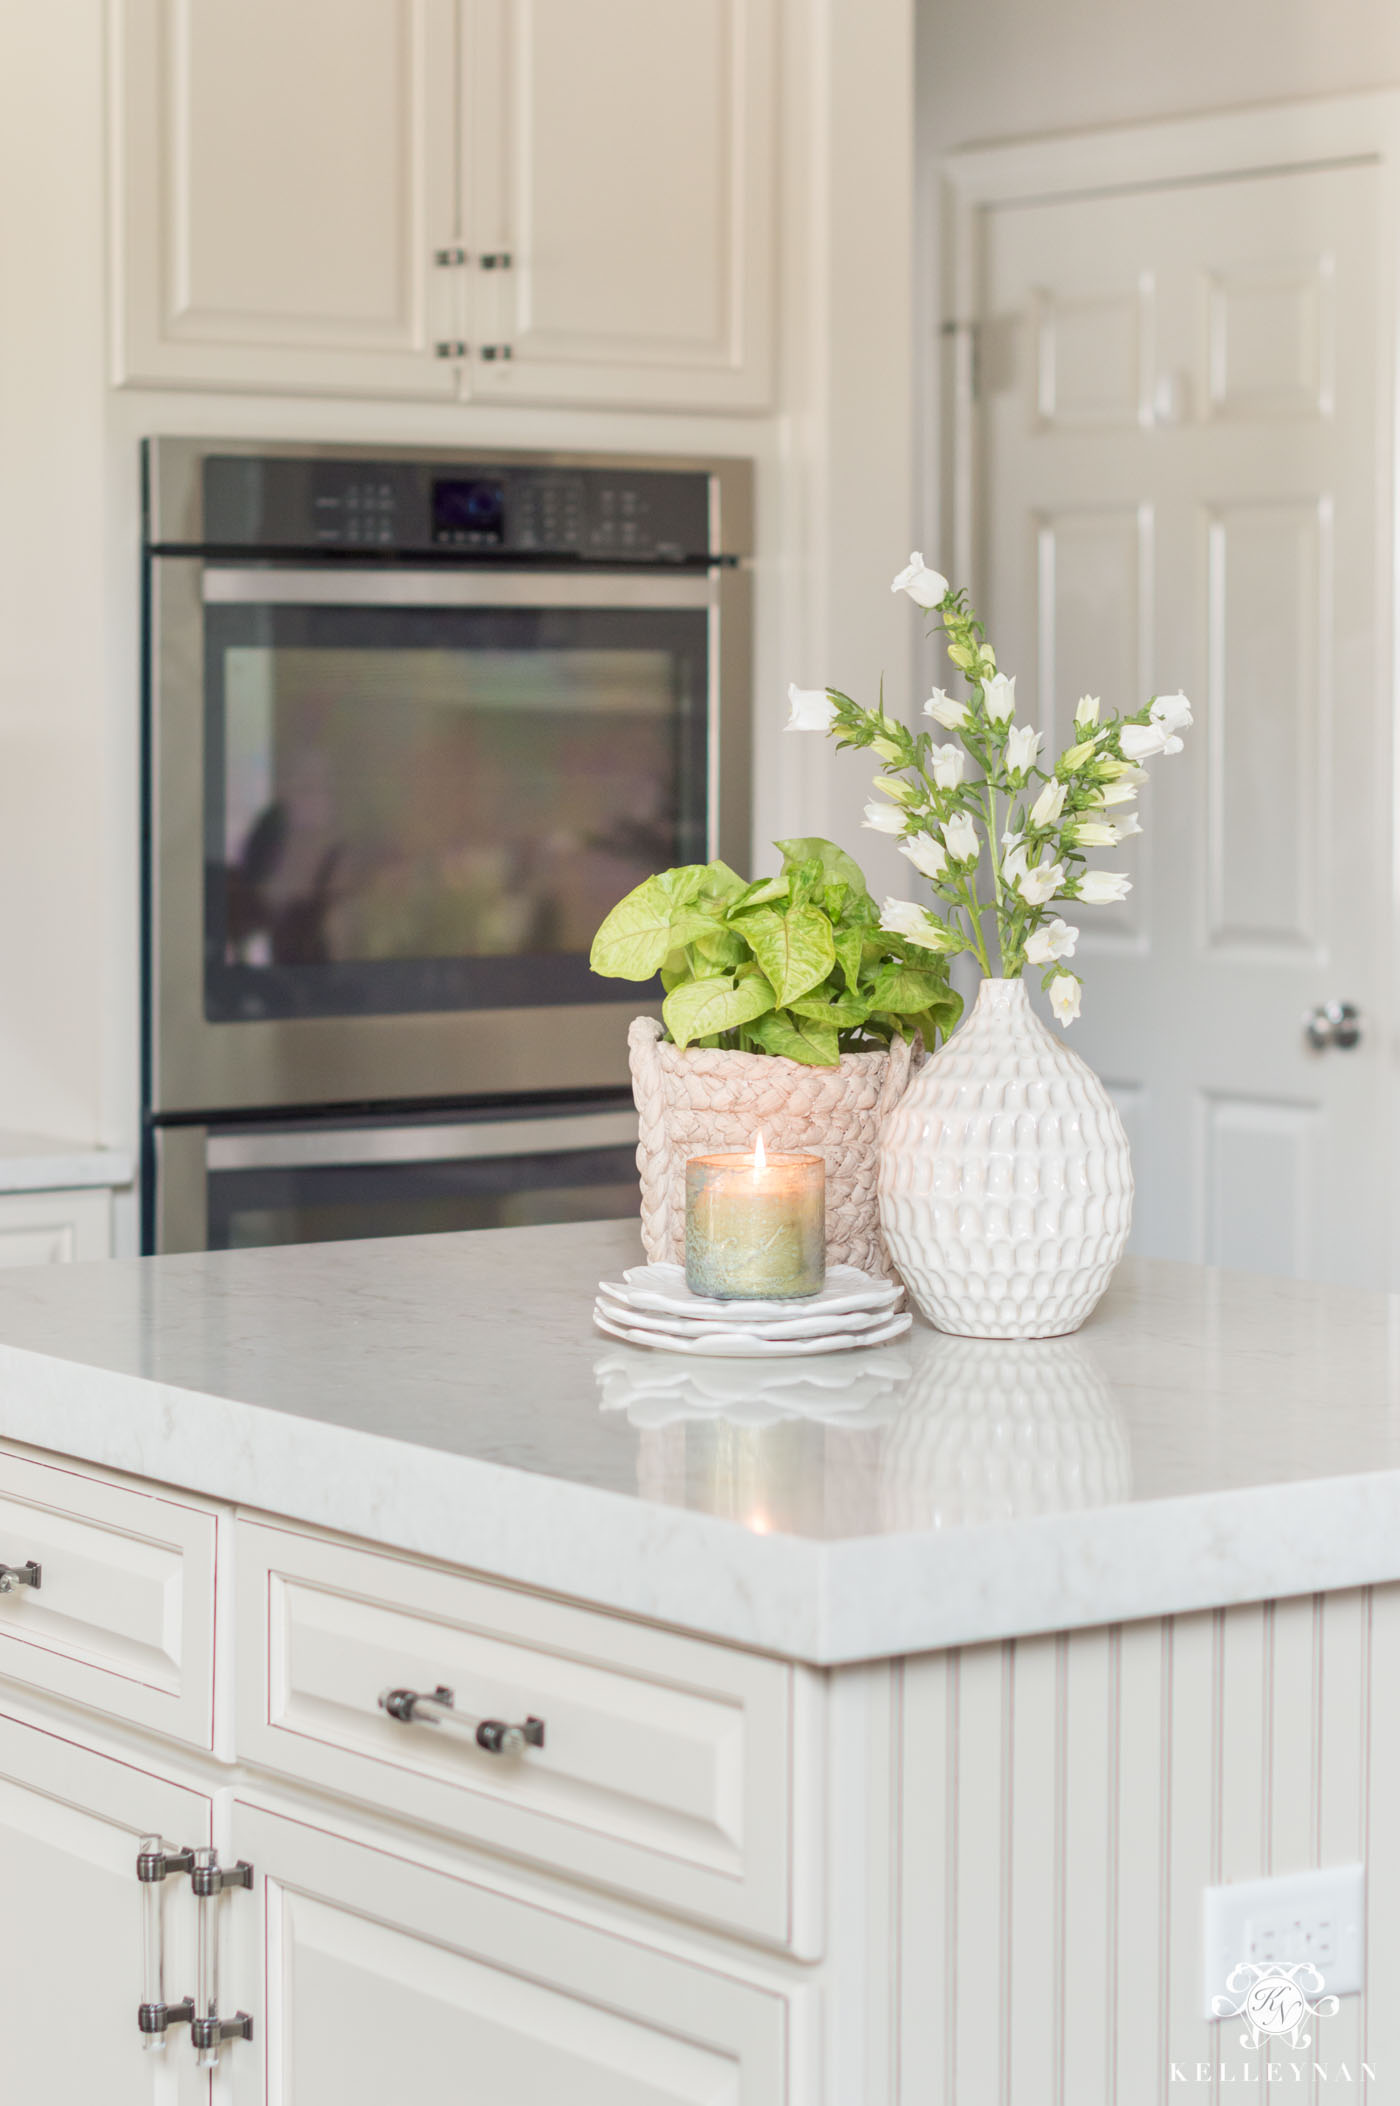 Kitchen Island Decor: 11 Easy Styling Tips  Kelley Nan